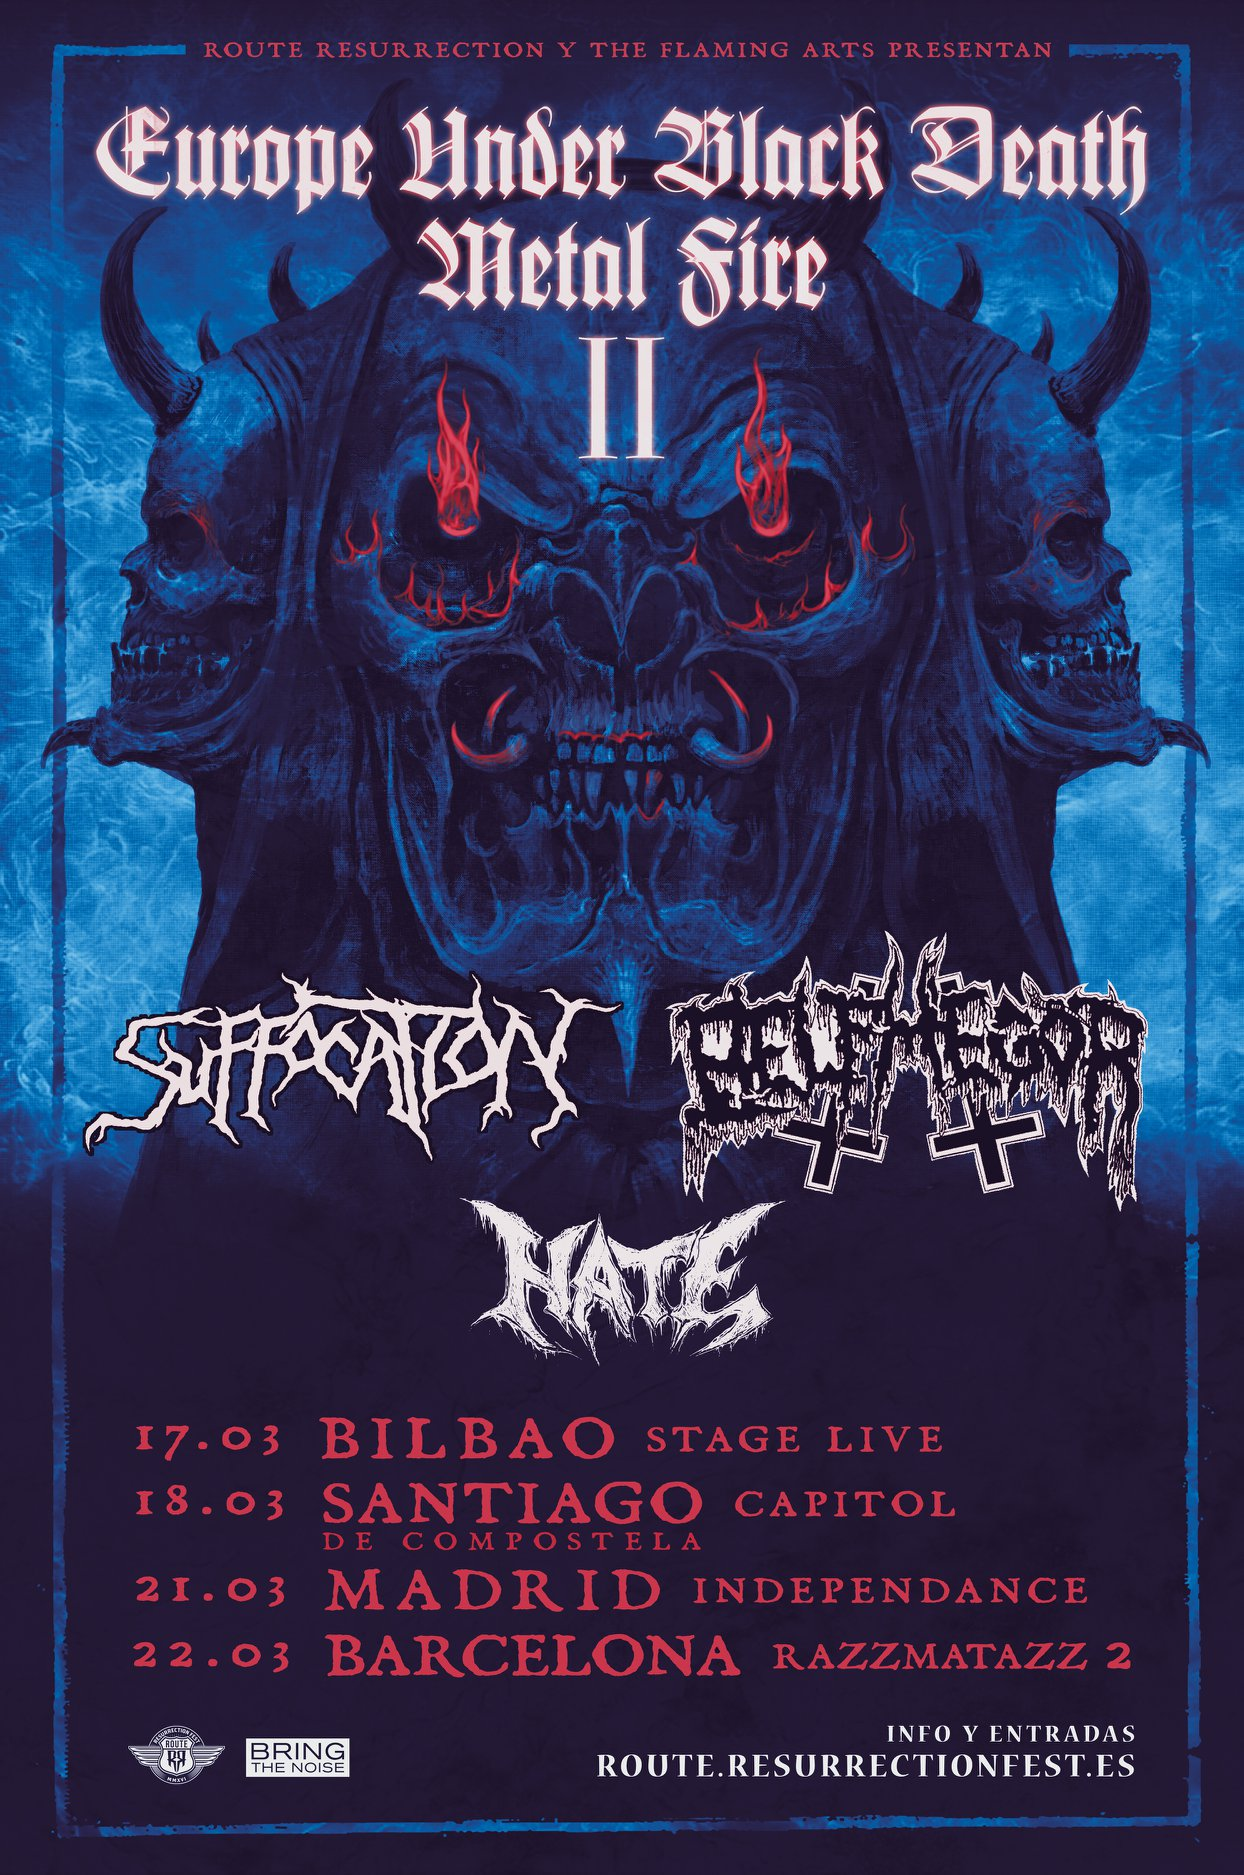 Suffocation + Belphegor + Hate